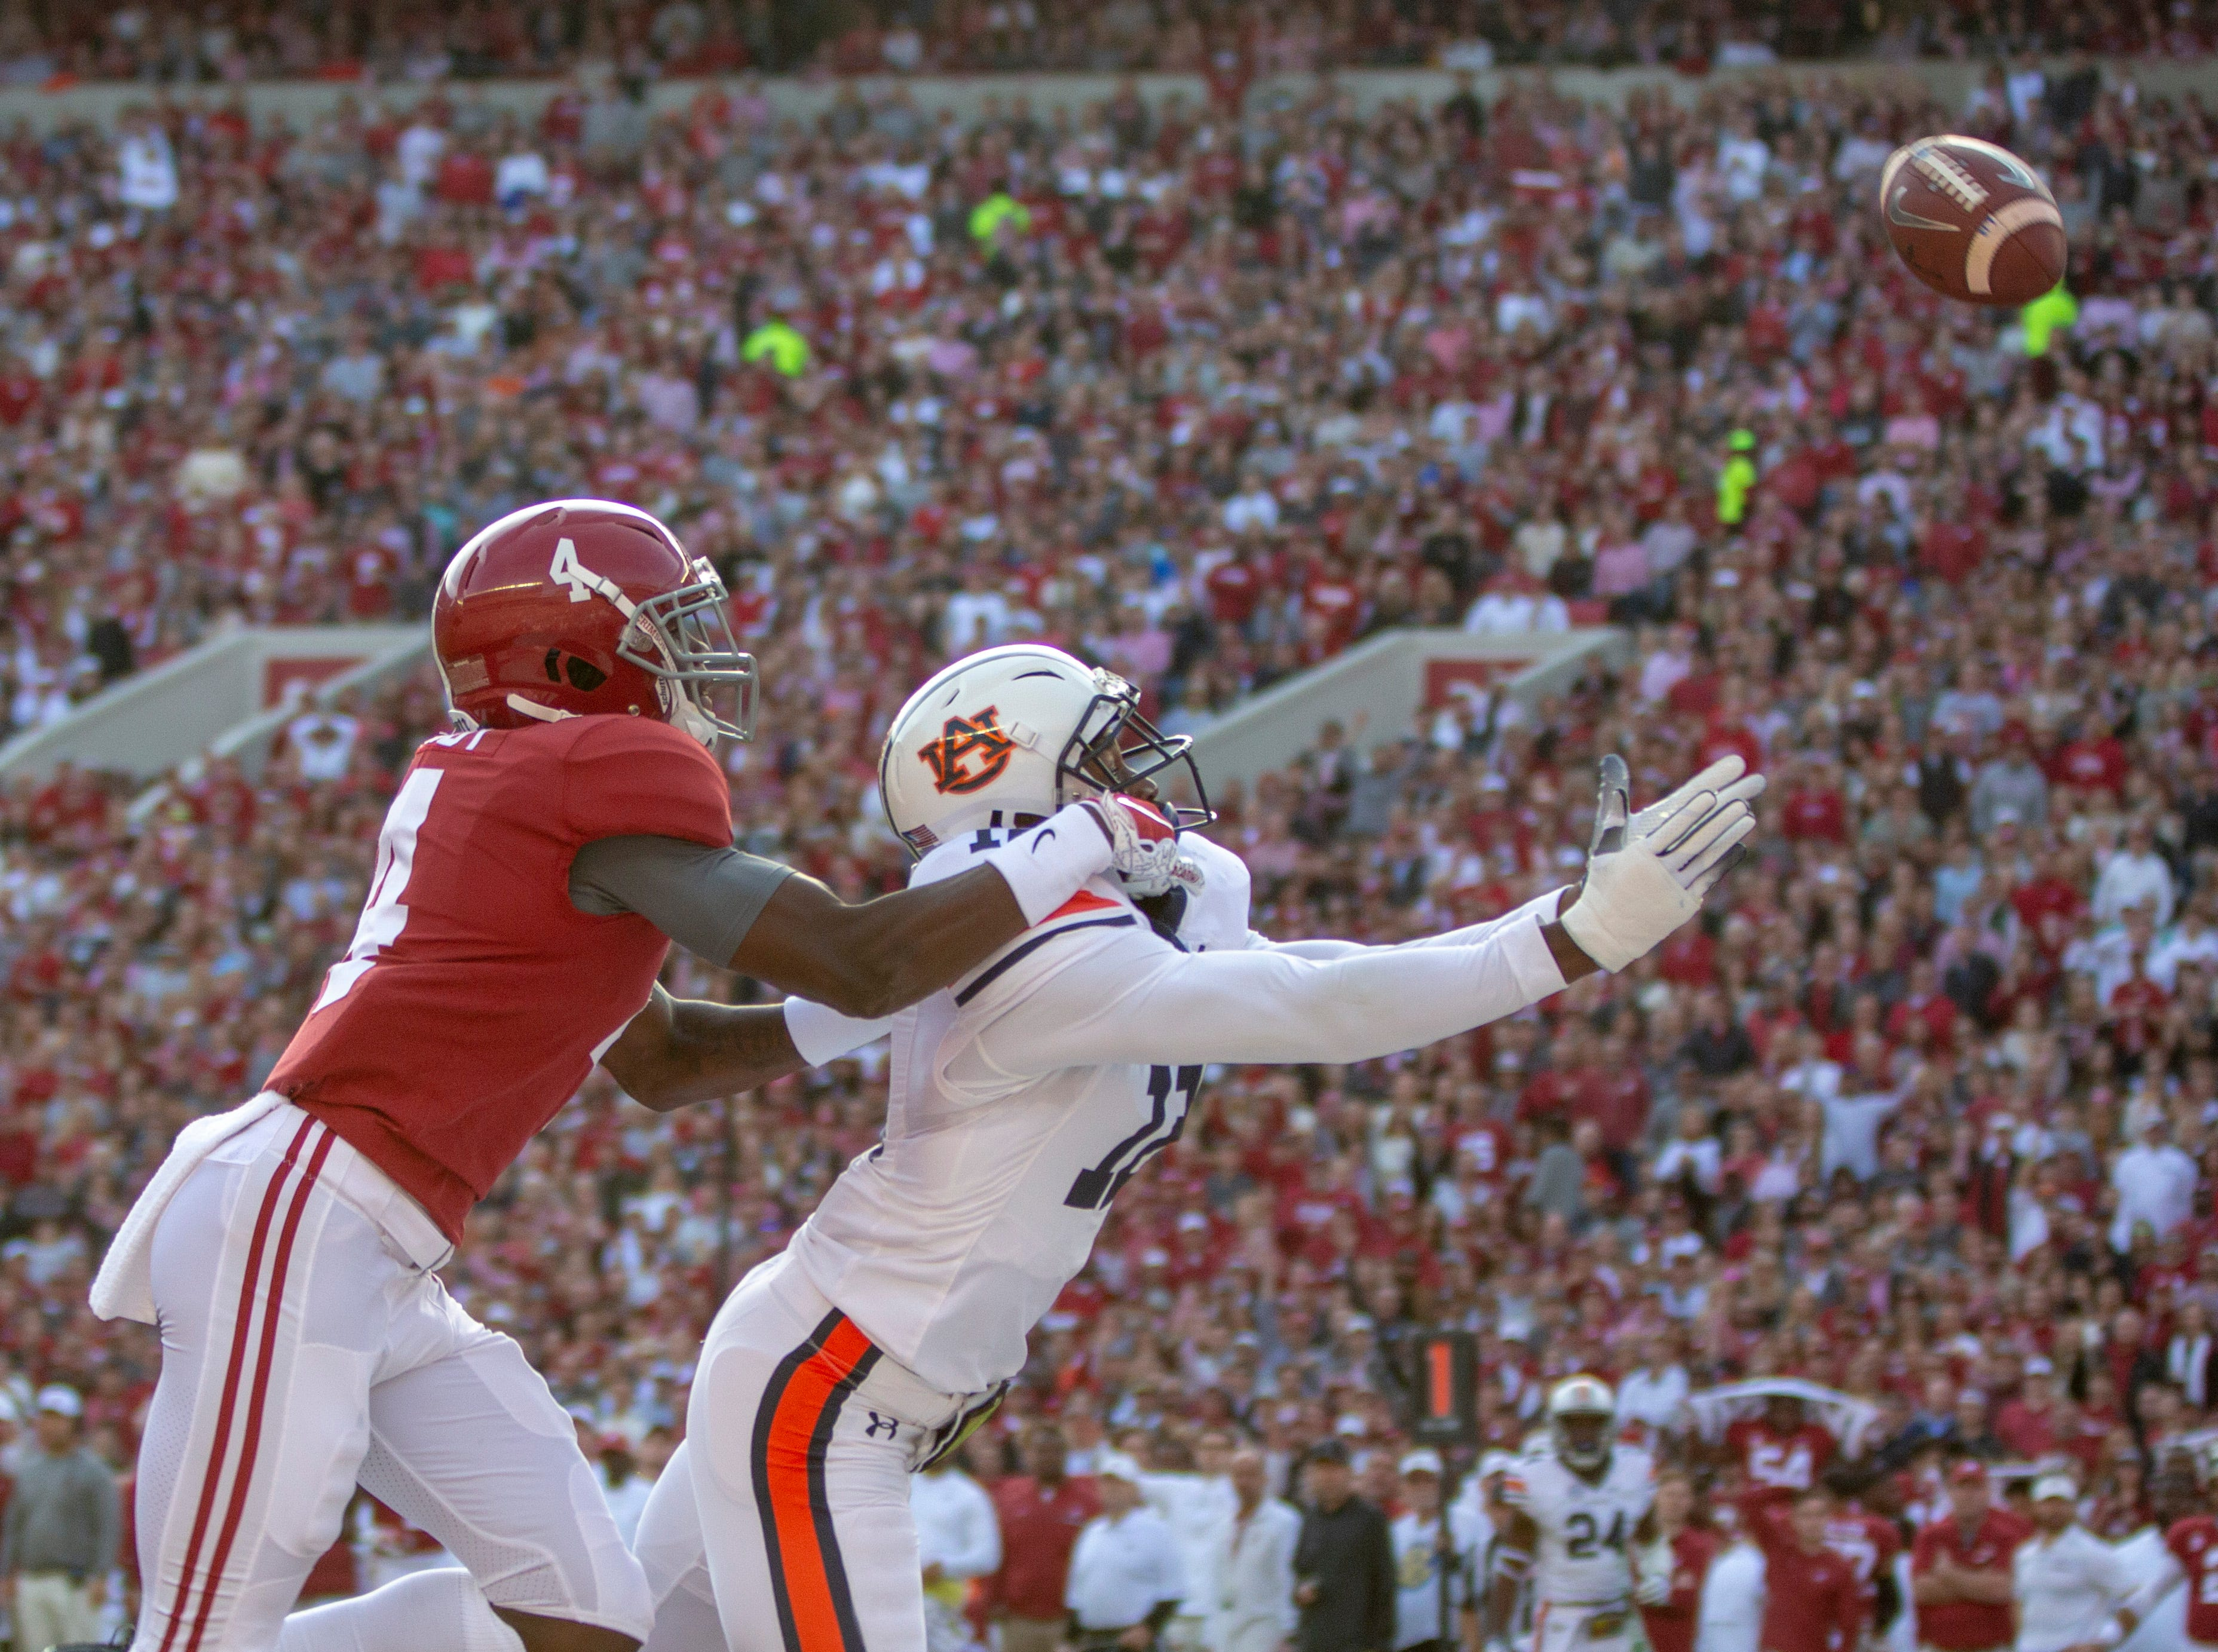 Alabama's Jerry Jeudy tries to keep Auburn's Jamel Dean from catching an interception in Bama's end zone.